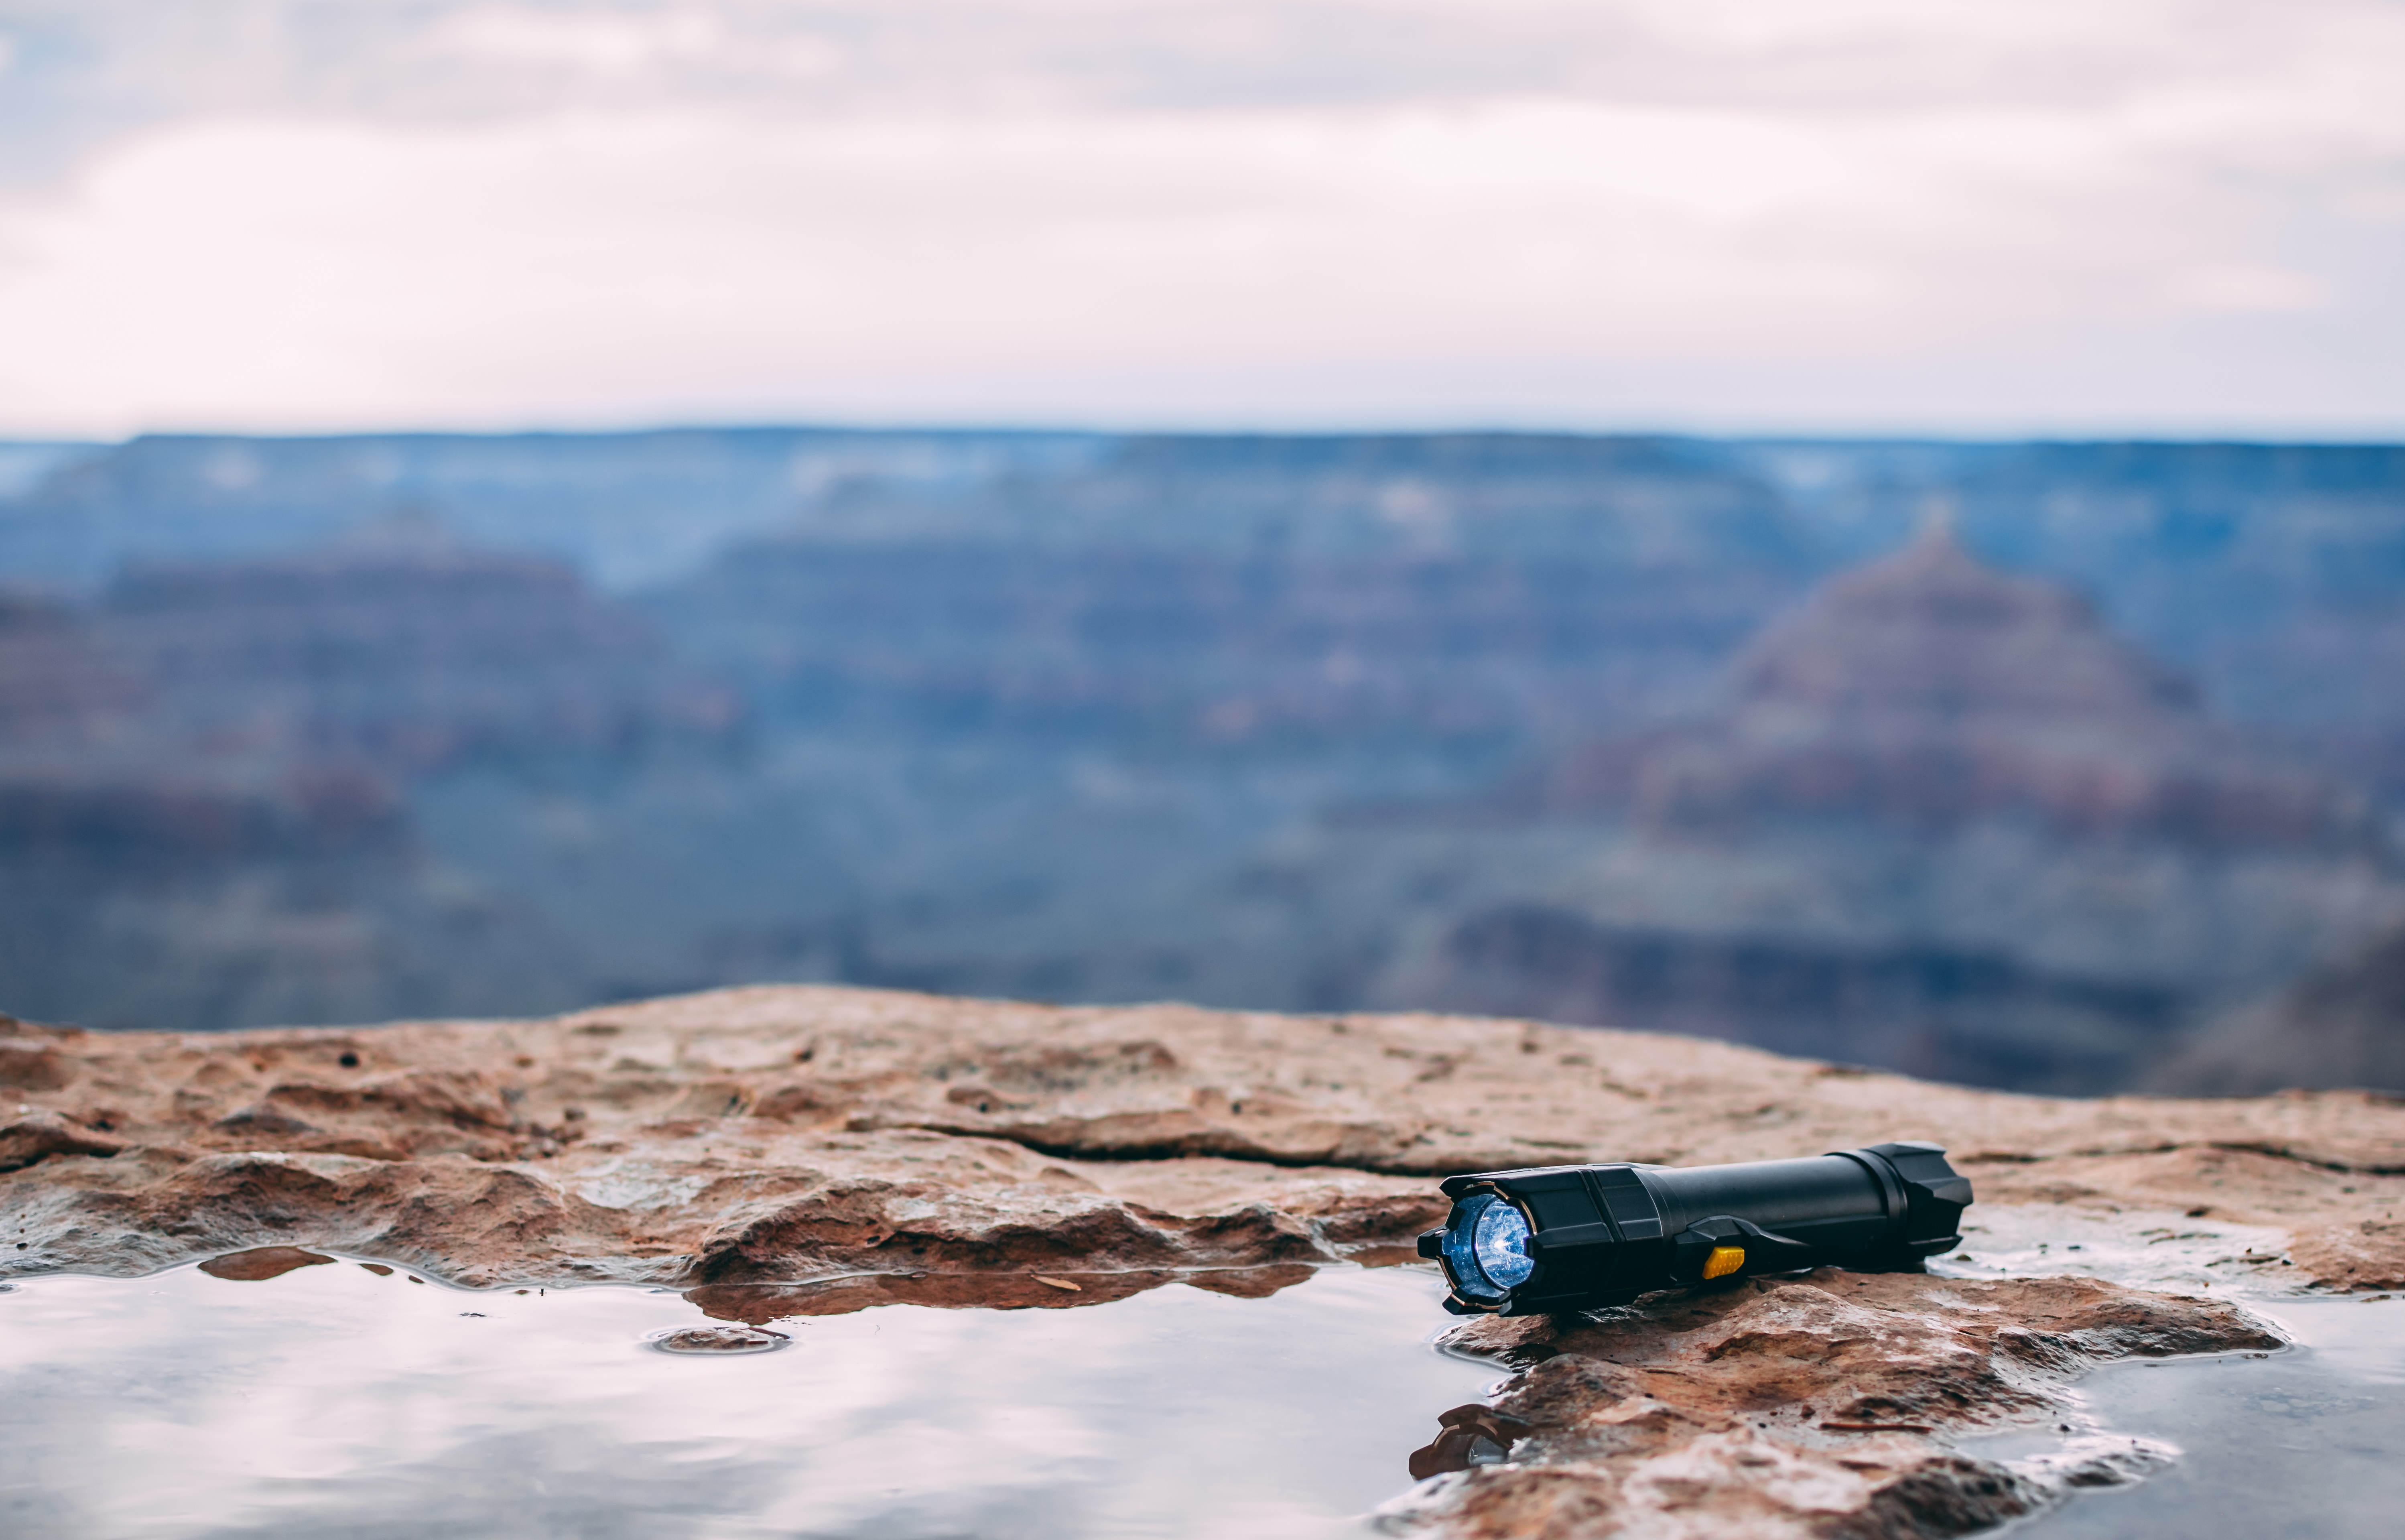 The TASER Strikelight Grand Canyon